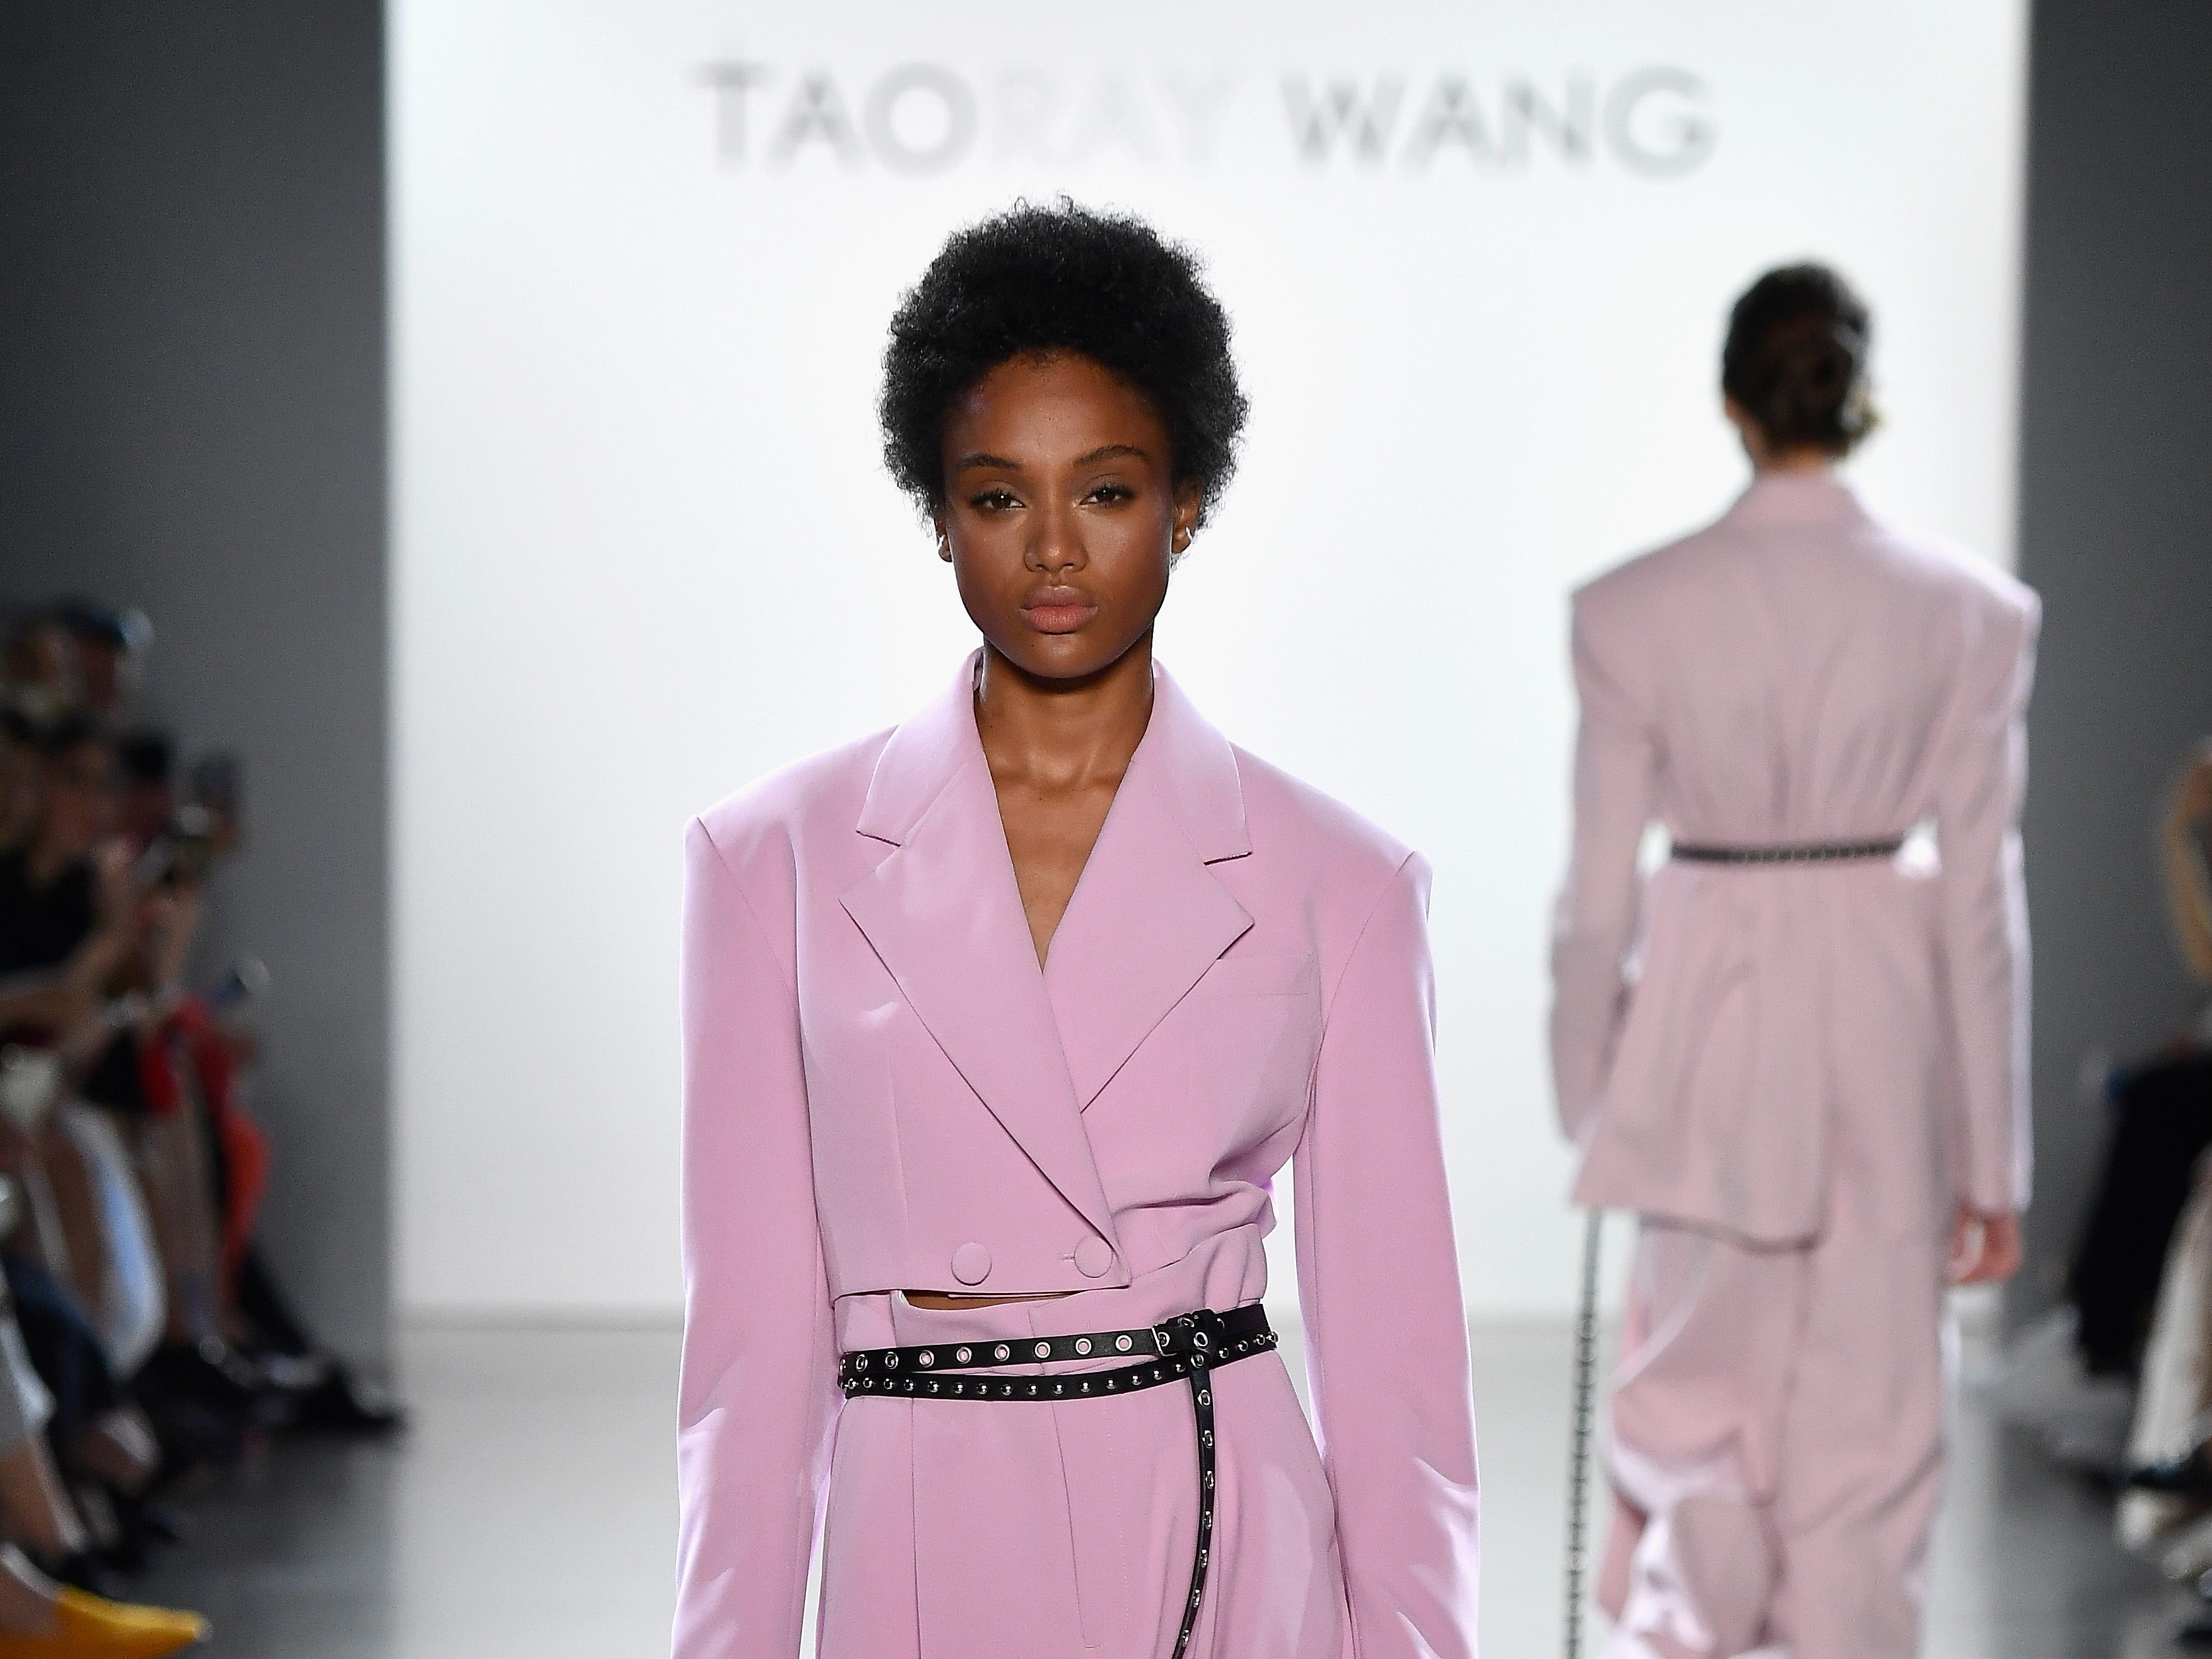 The Taoray Wang kept the colors solid and simple with one distinct theme throughout the show: belts!